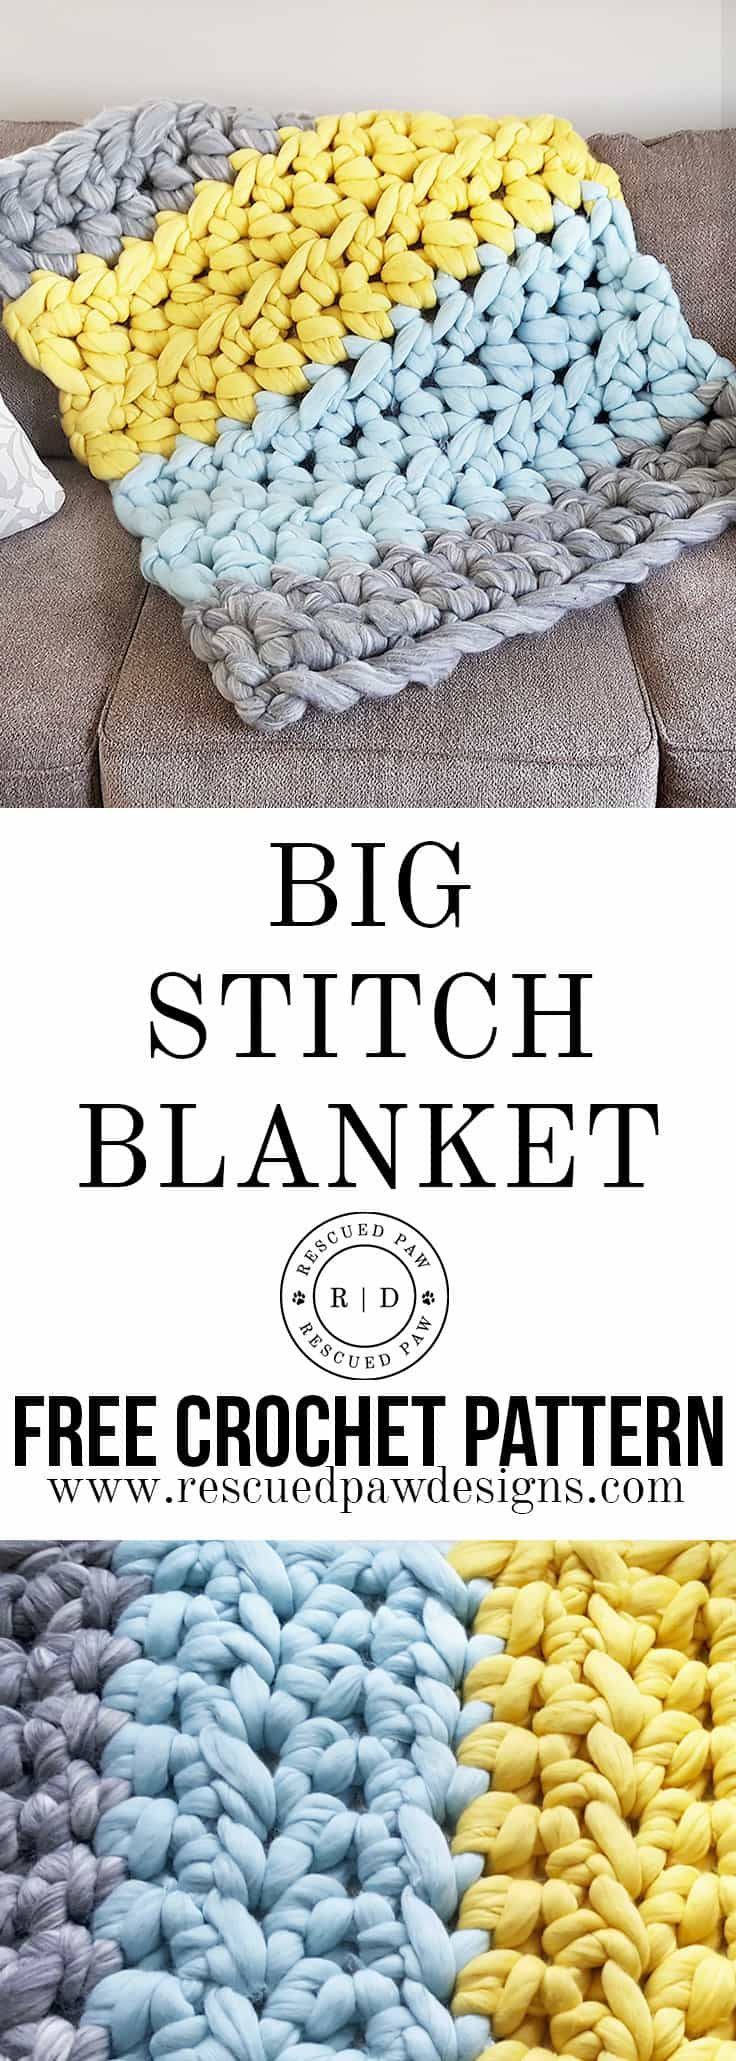 496 best crochet afghans and blankets images on pinterest free big stitch extreme crochet blanket pattern free pattern bankloansurffo Images